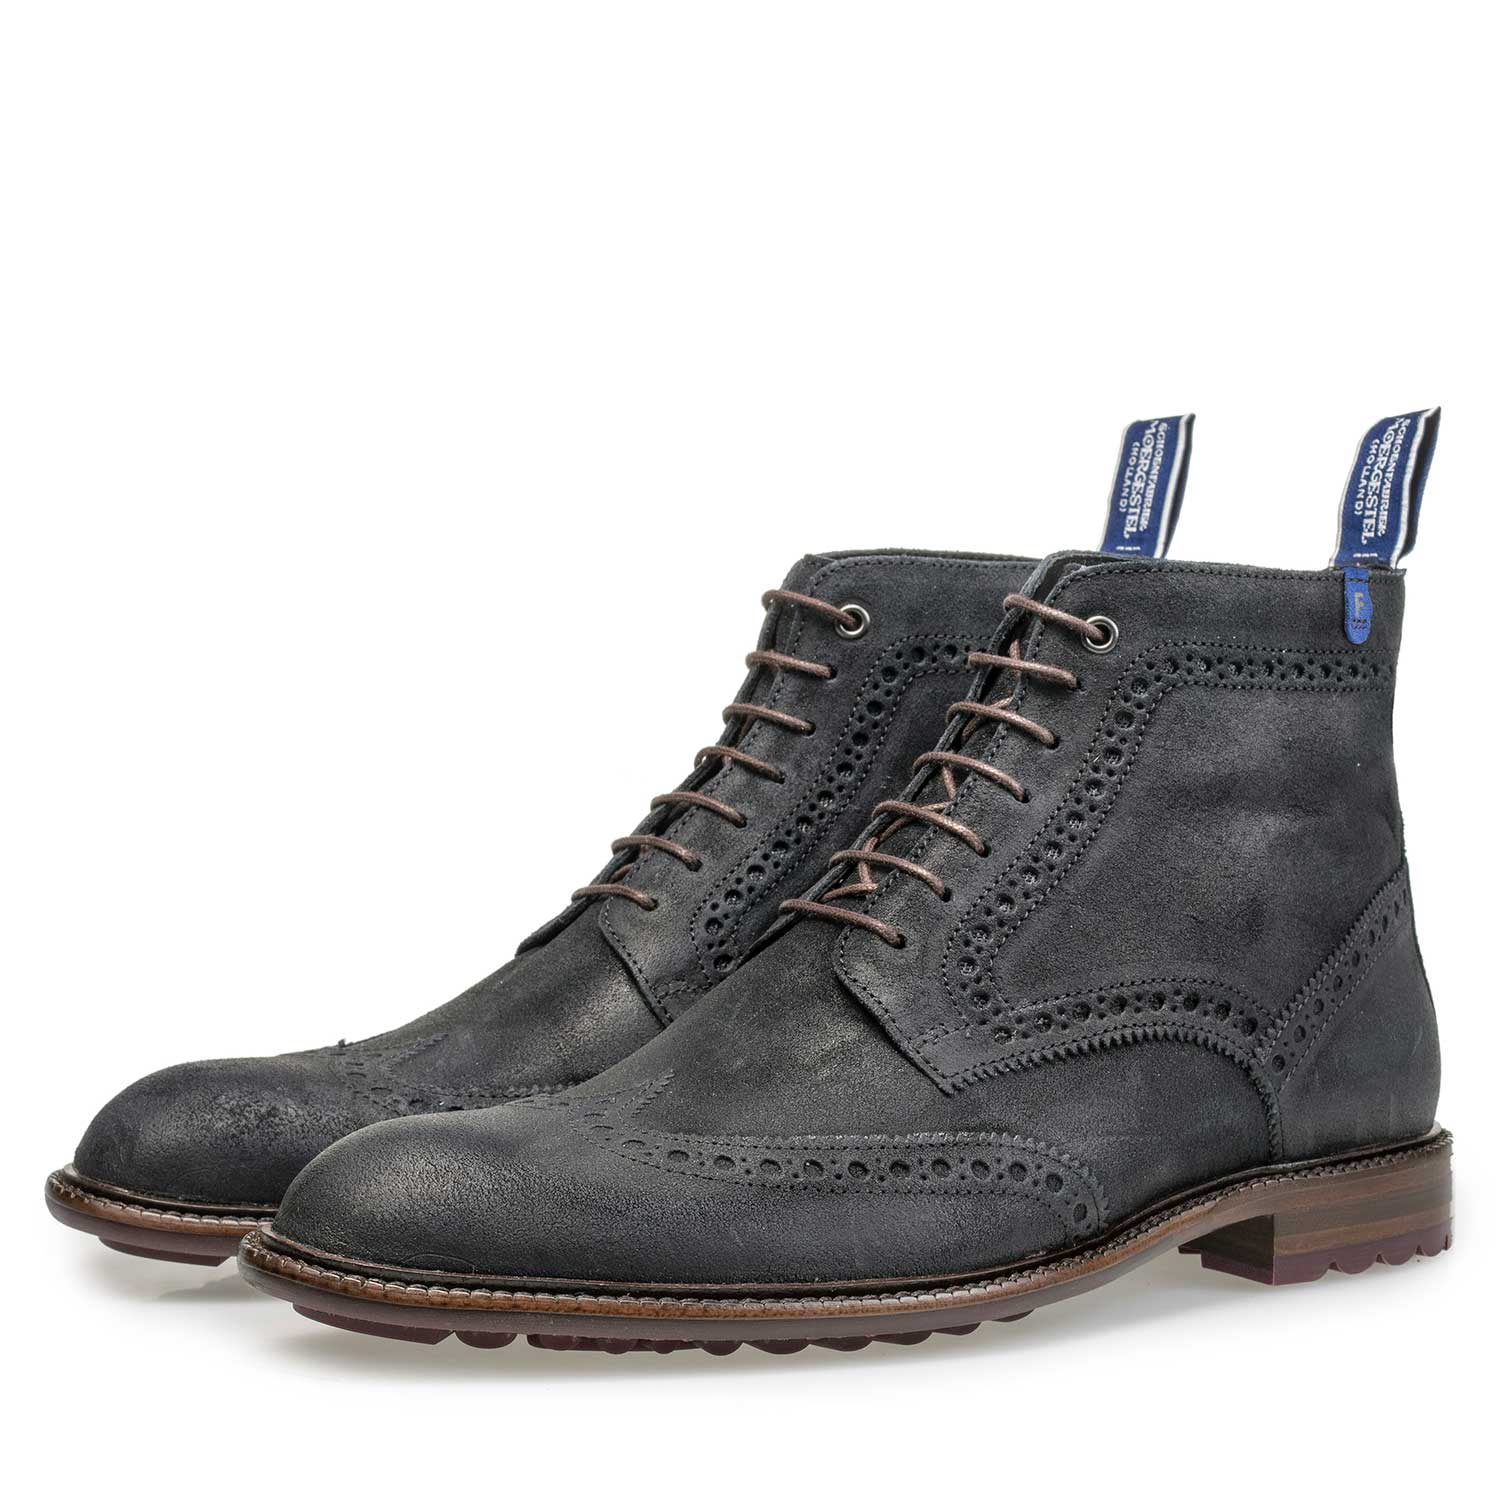 10506/03 - Blue suede leather brogue lace boot